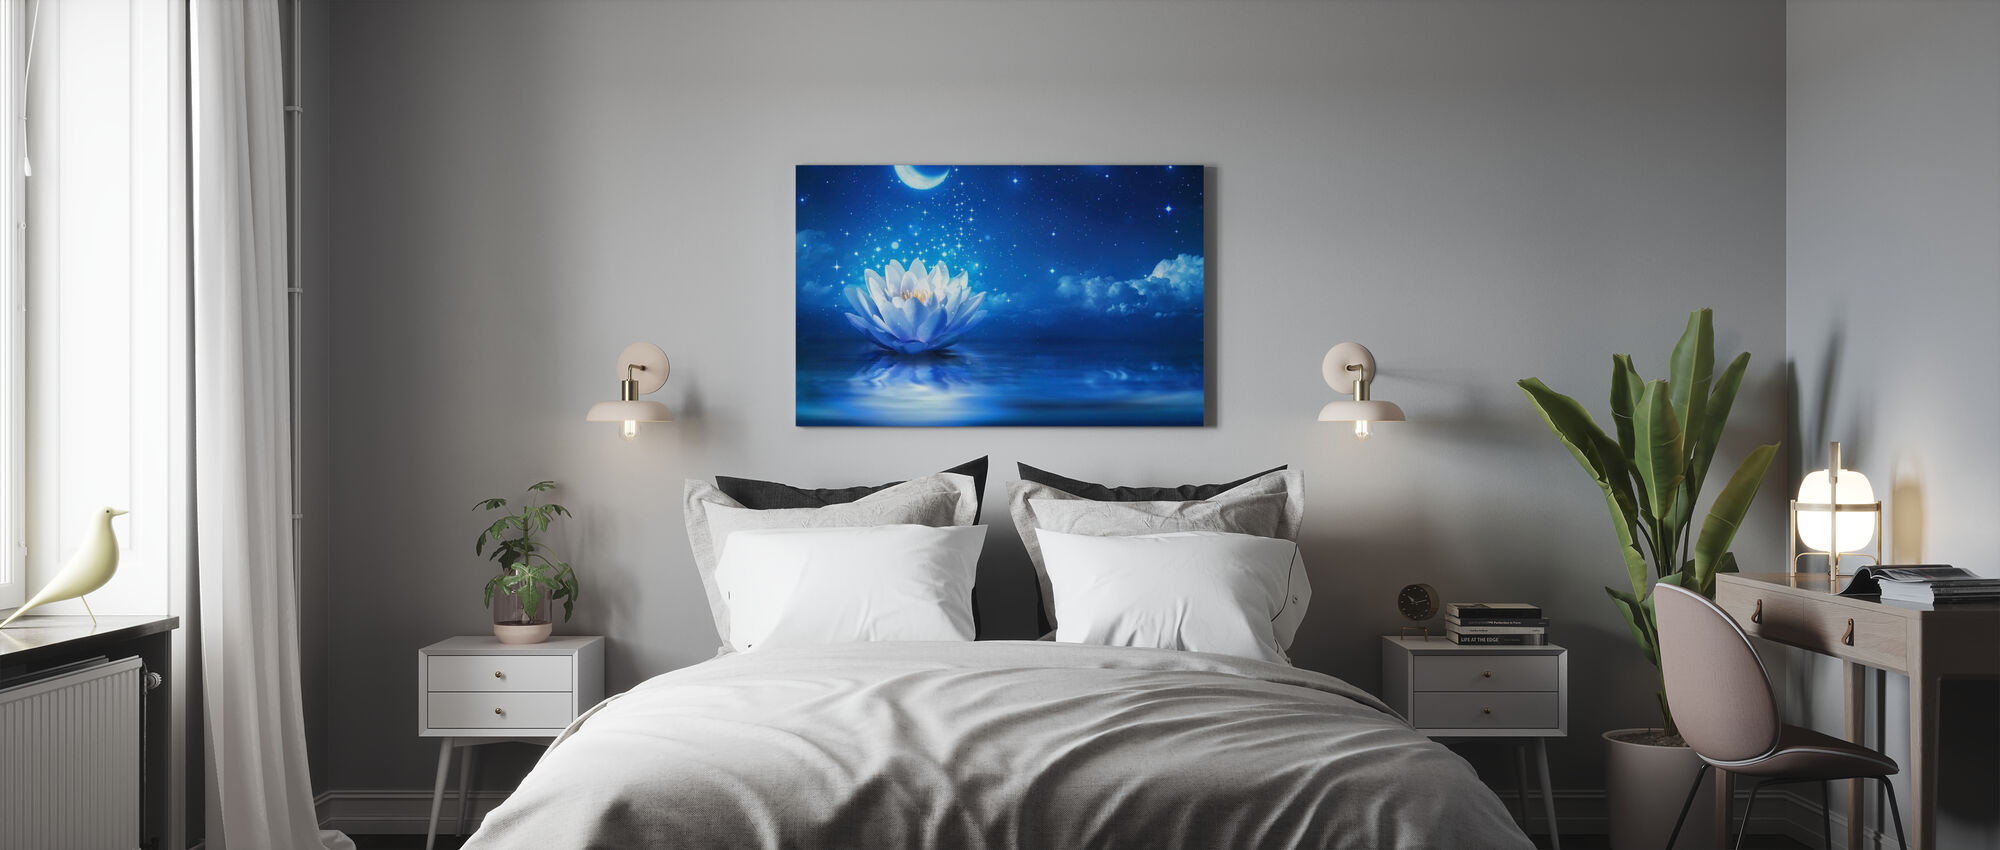 Waterlily Moon - Canvas print - Bedroom